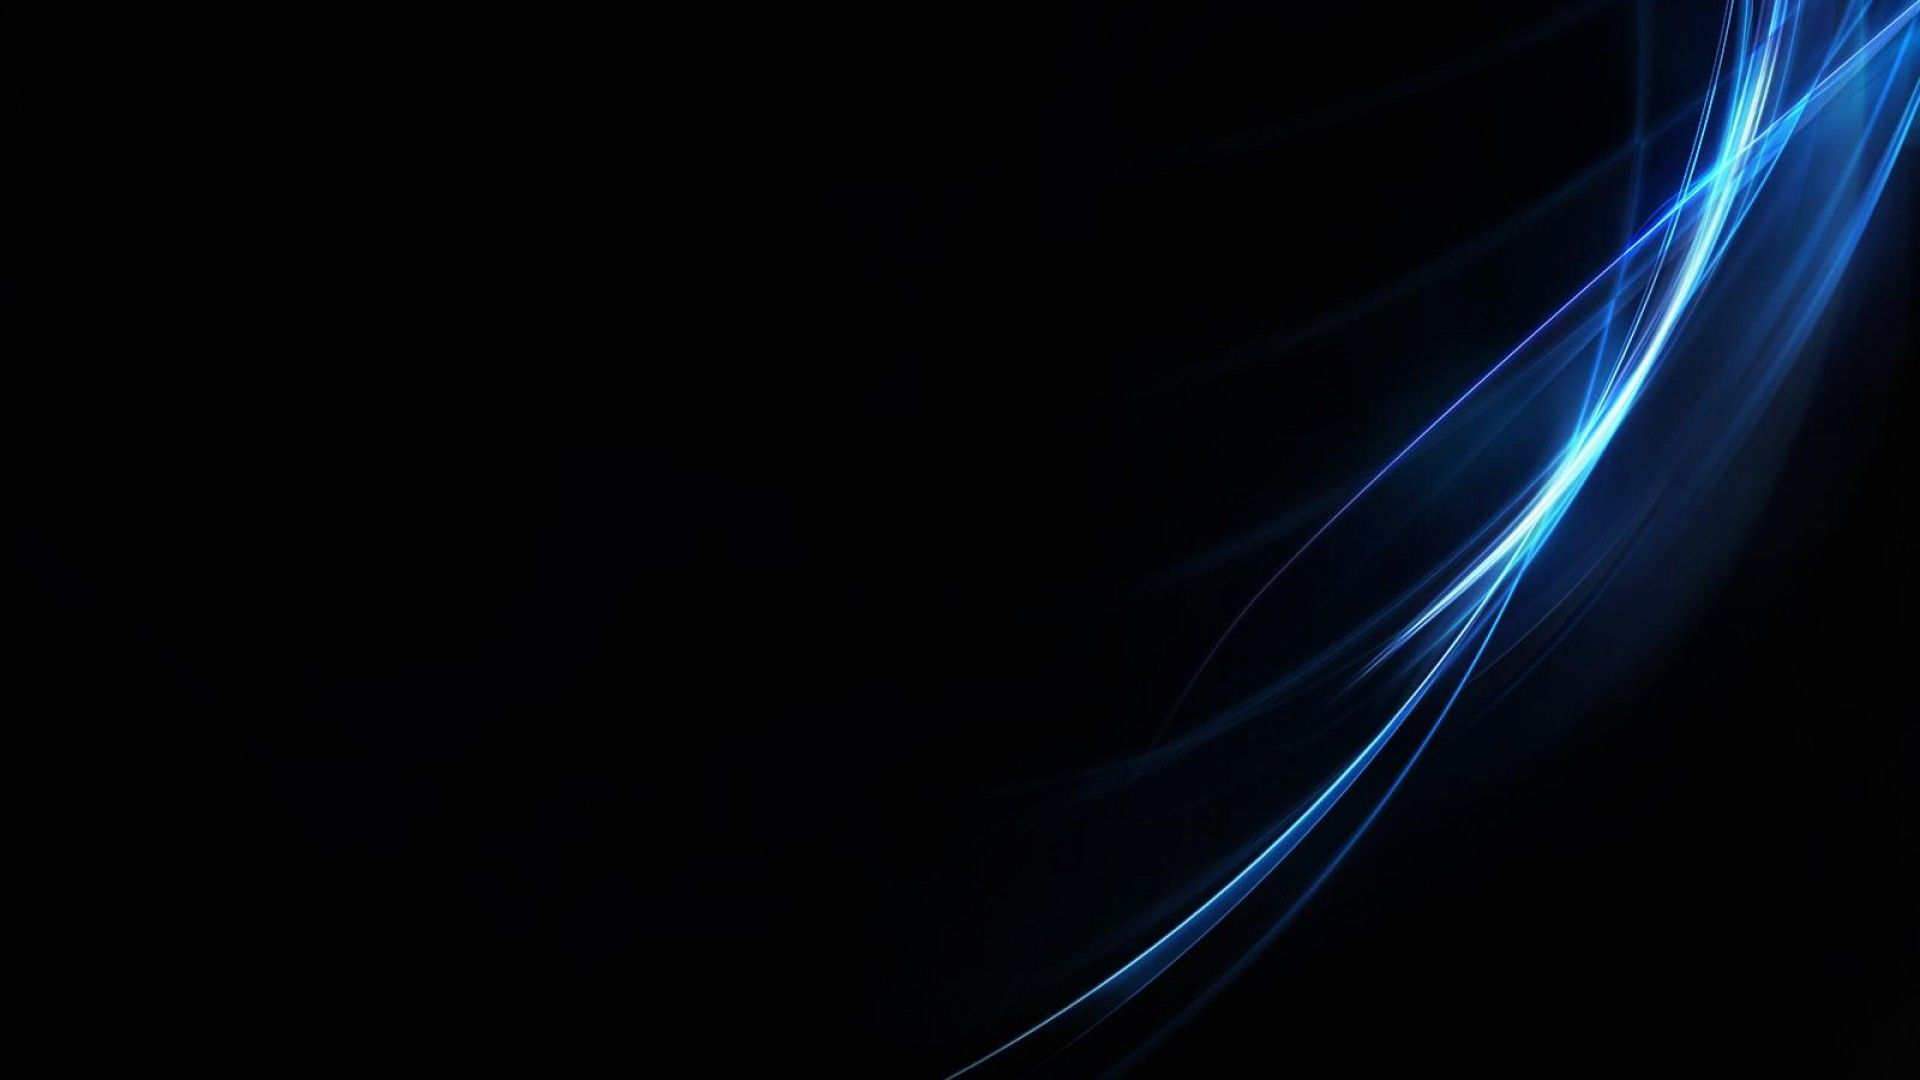 Black And Blue Desktop Wallpaper Black And Blue Wallpaper Dark